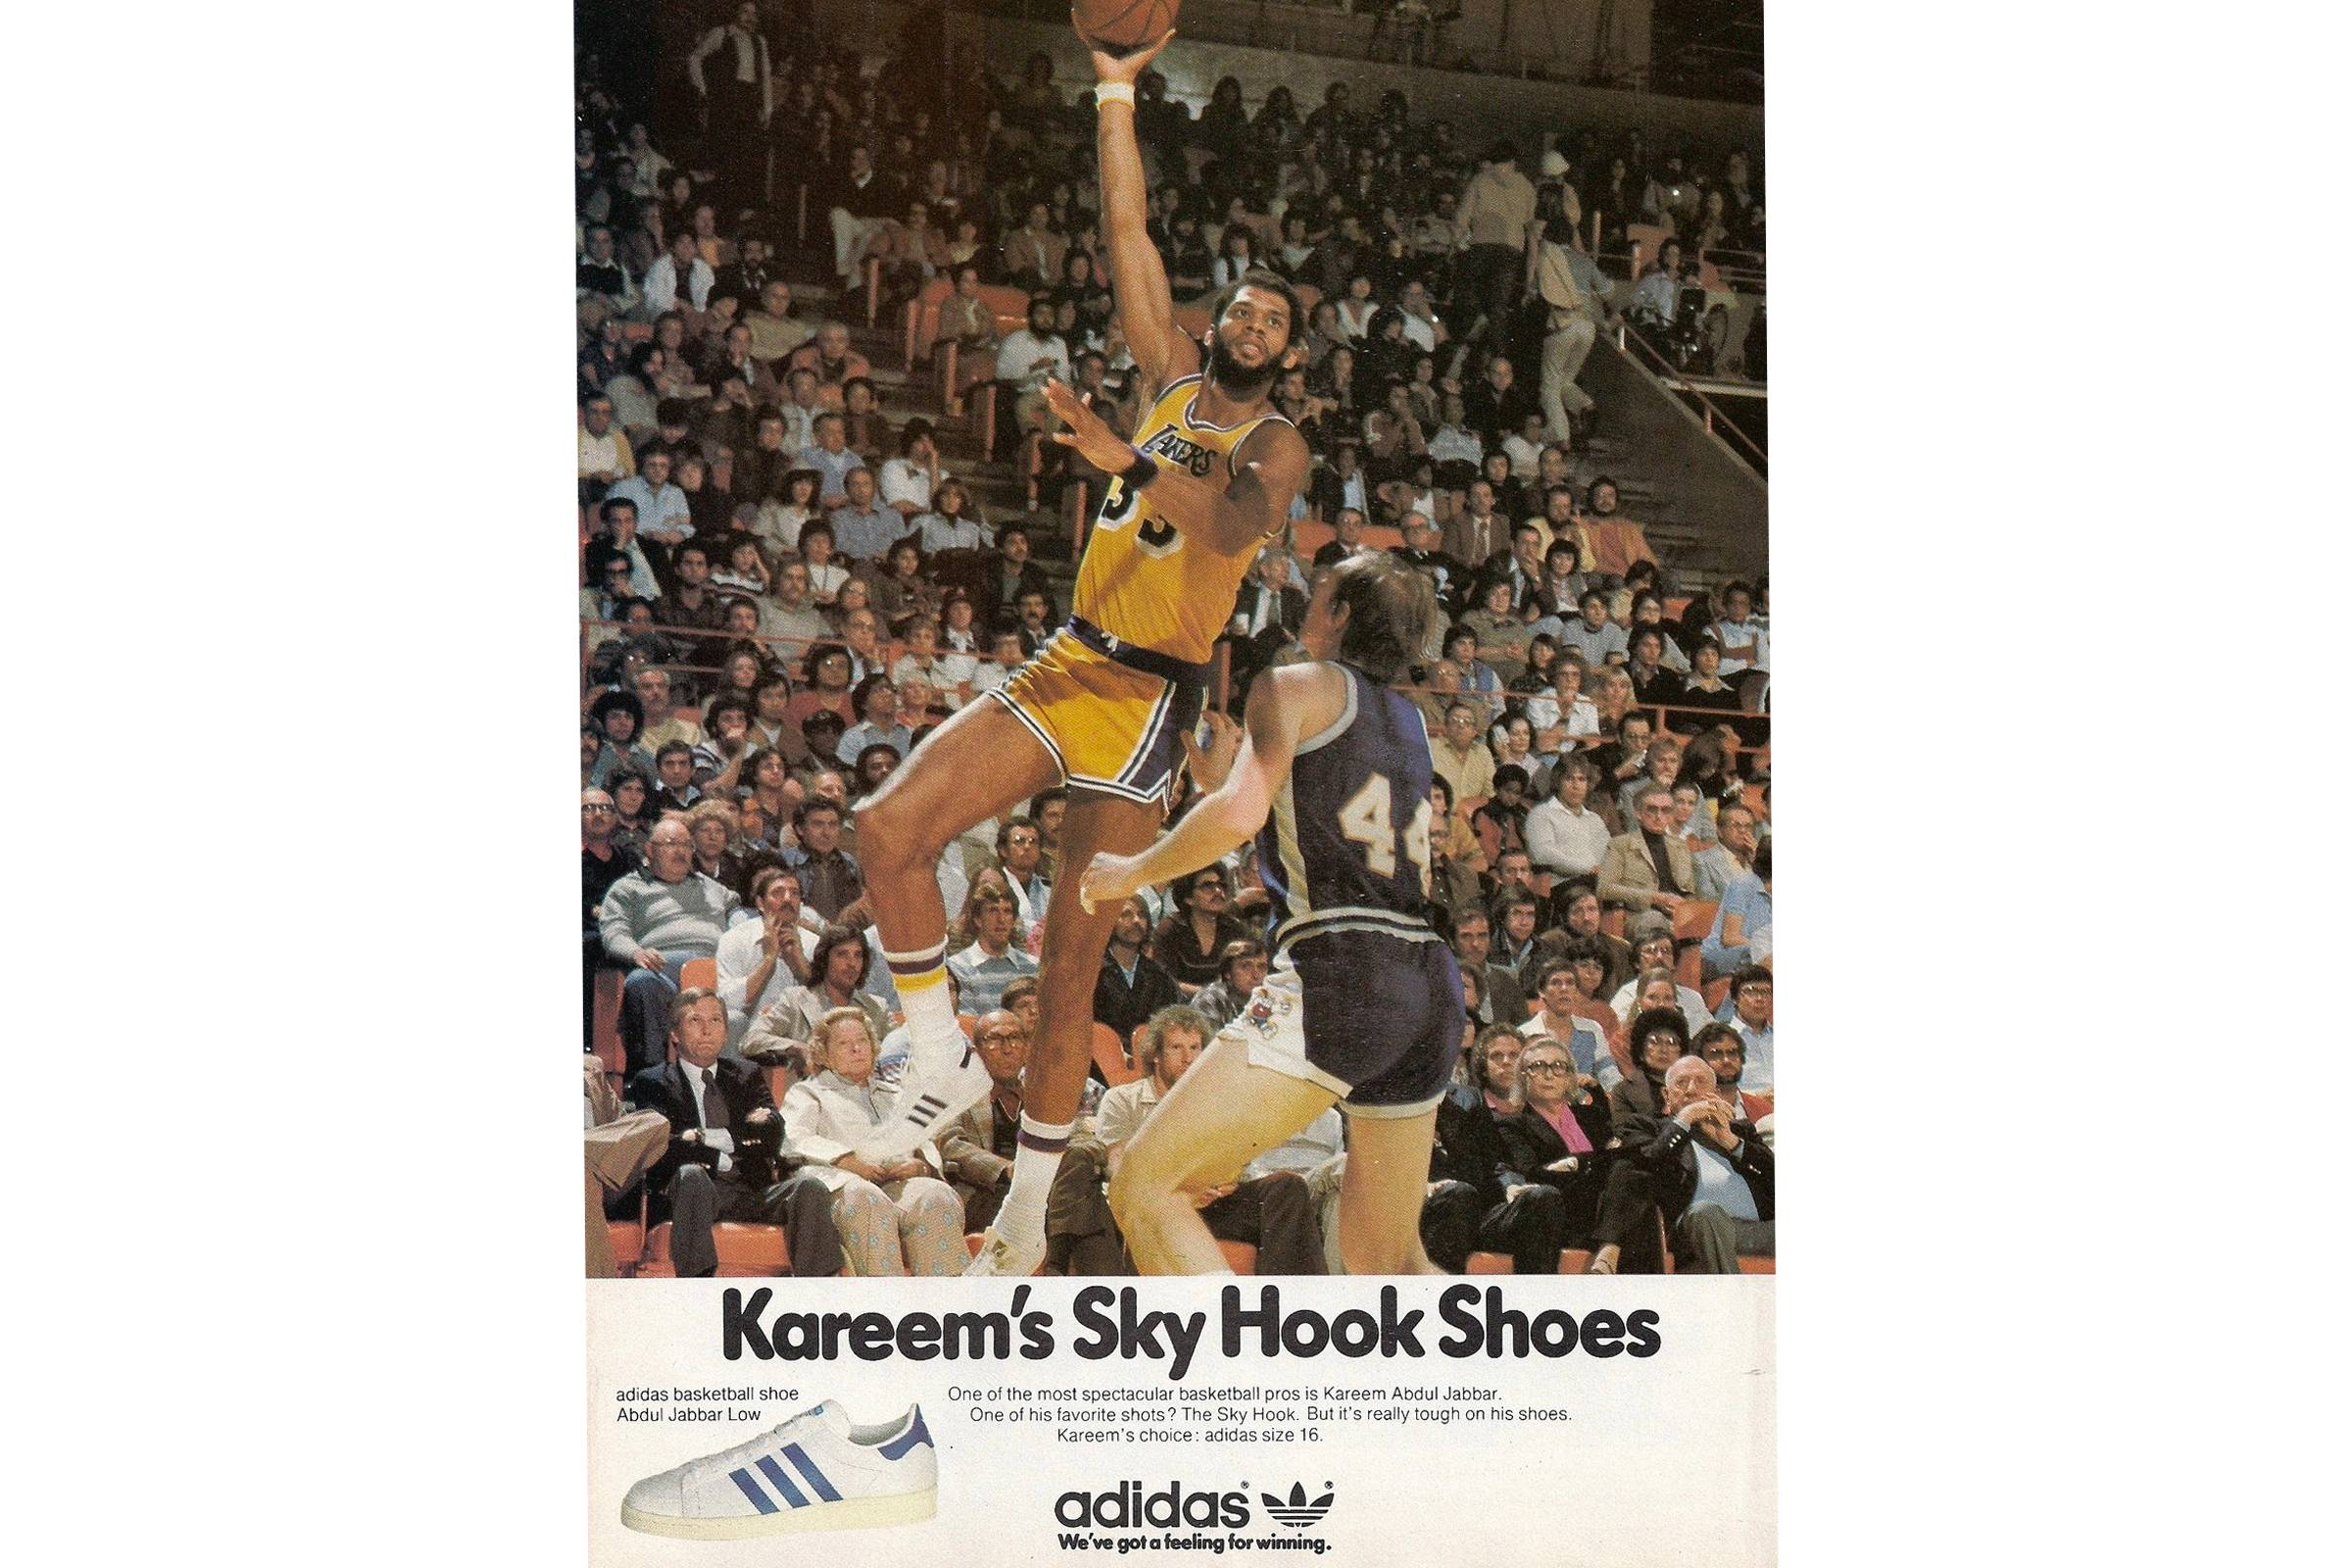 An of-the-era ad for the adidas Superstar, featuring Kareem Abdul-Jabbar